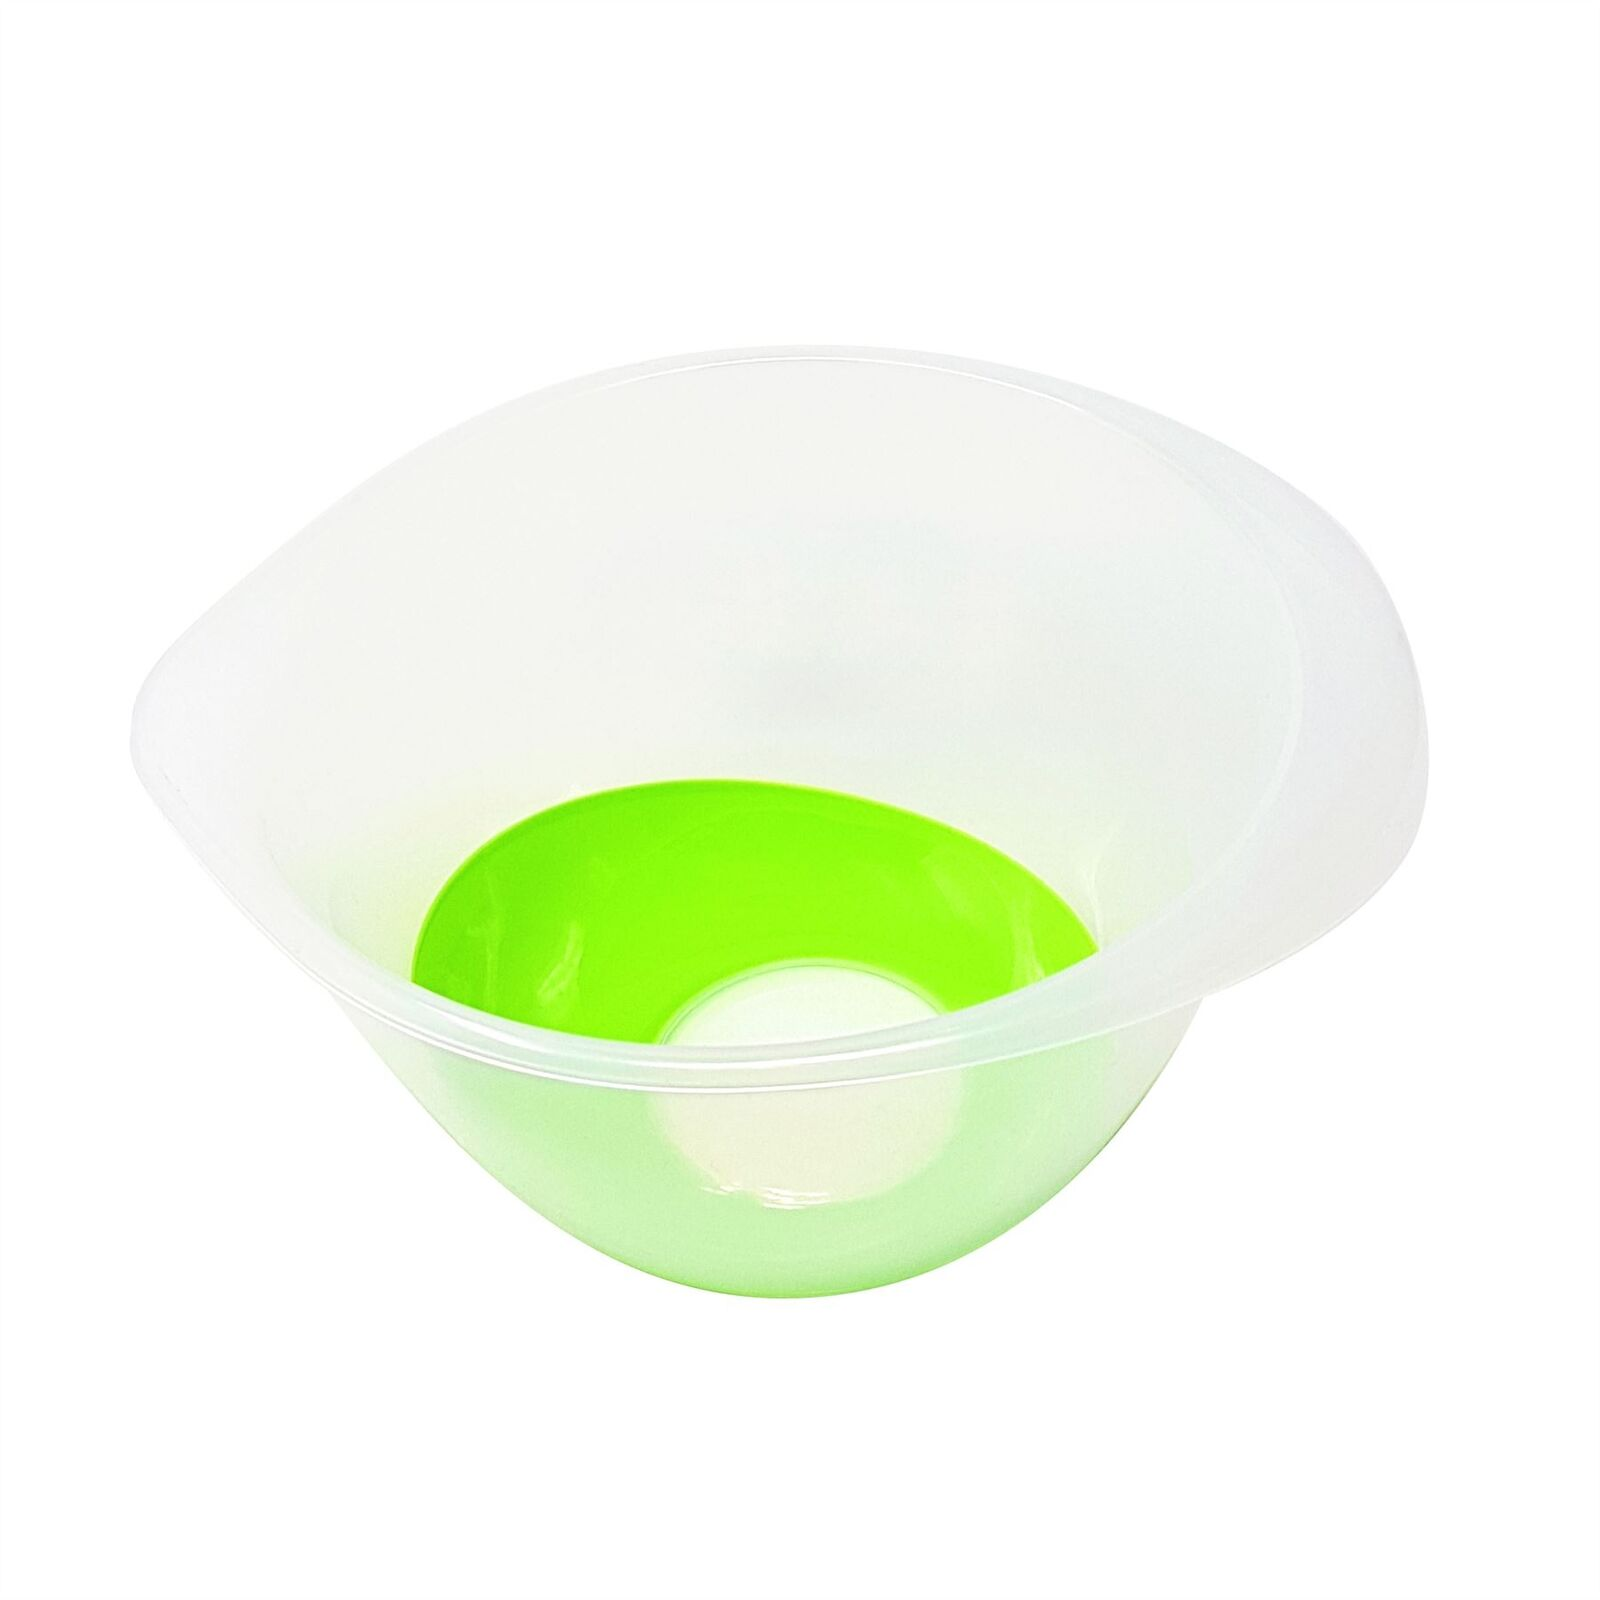 10 KITCHEN FOOD COOKING NONE SLIP MIXING BOWL BPA FREE PLASTIC GREEN CLEAR 6 LTR